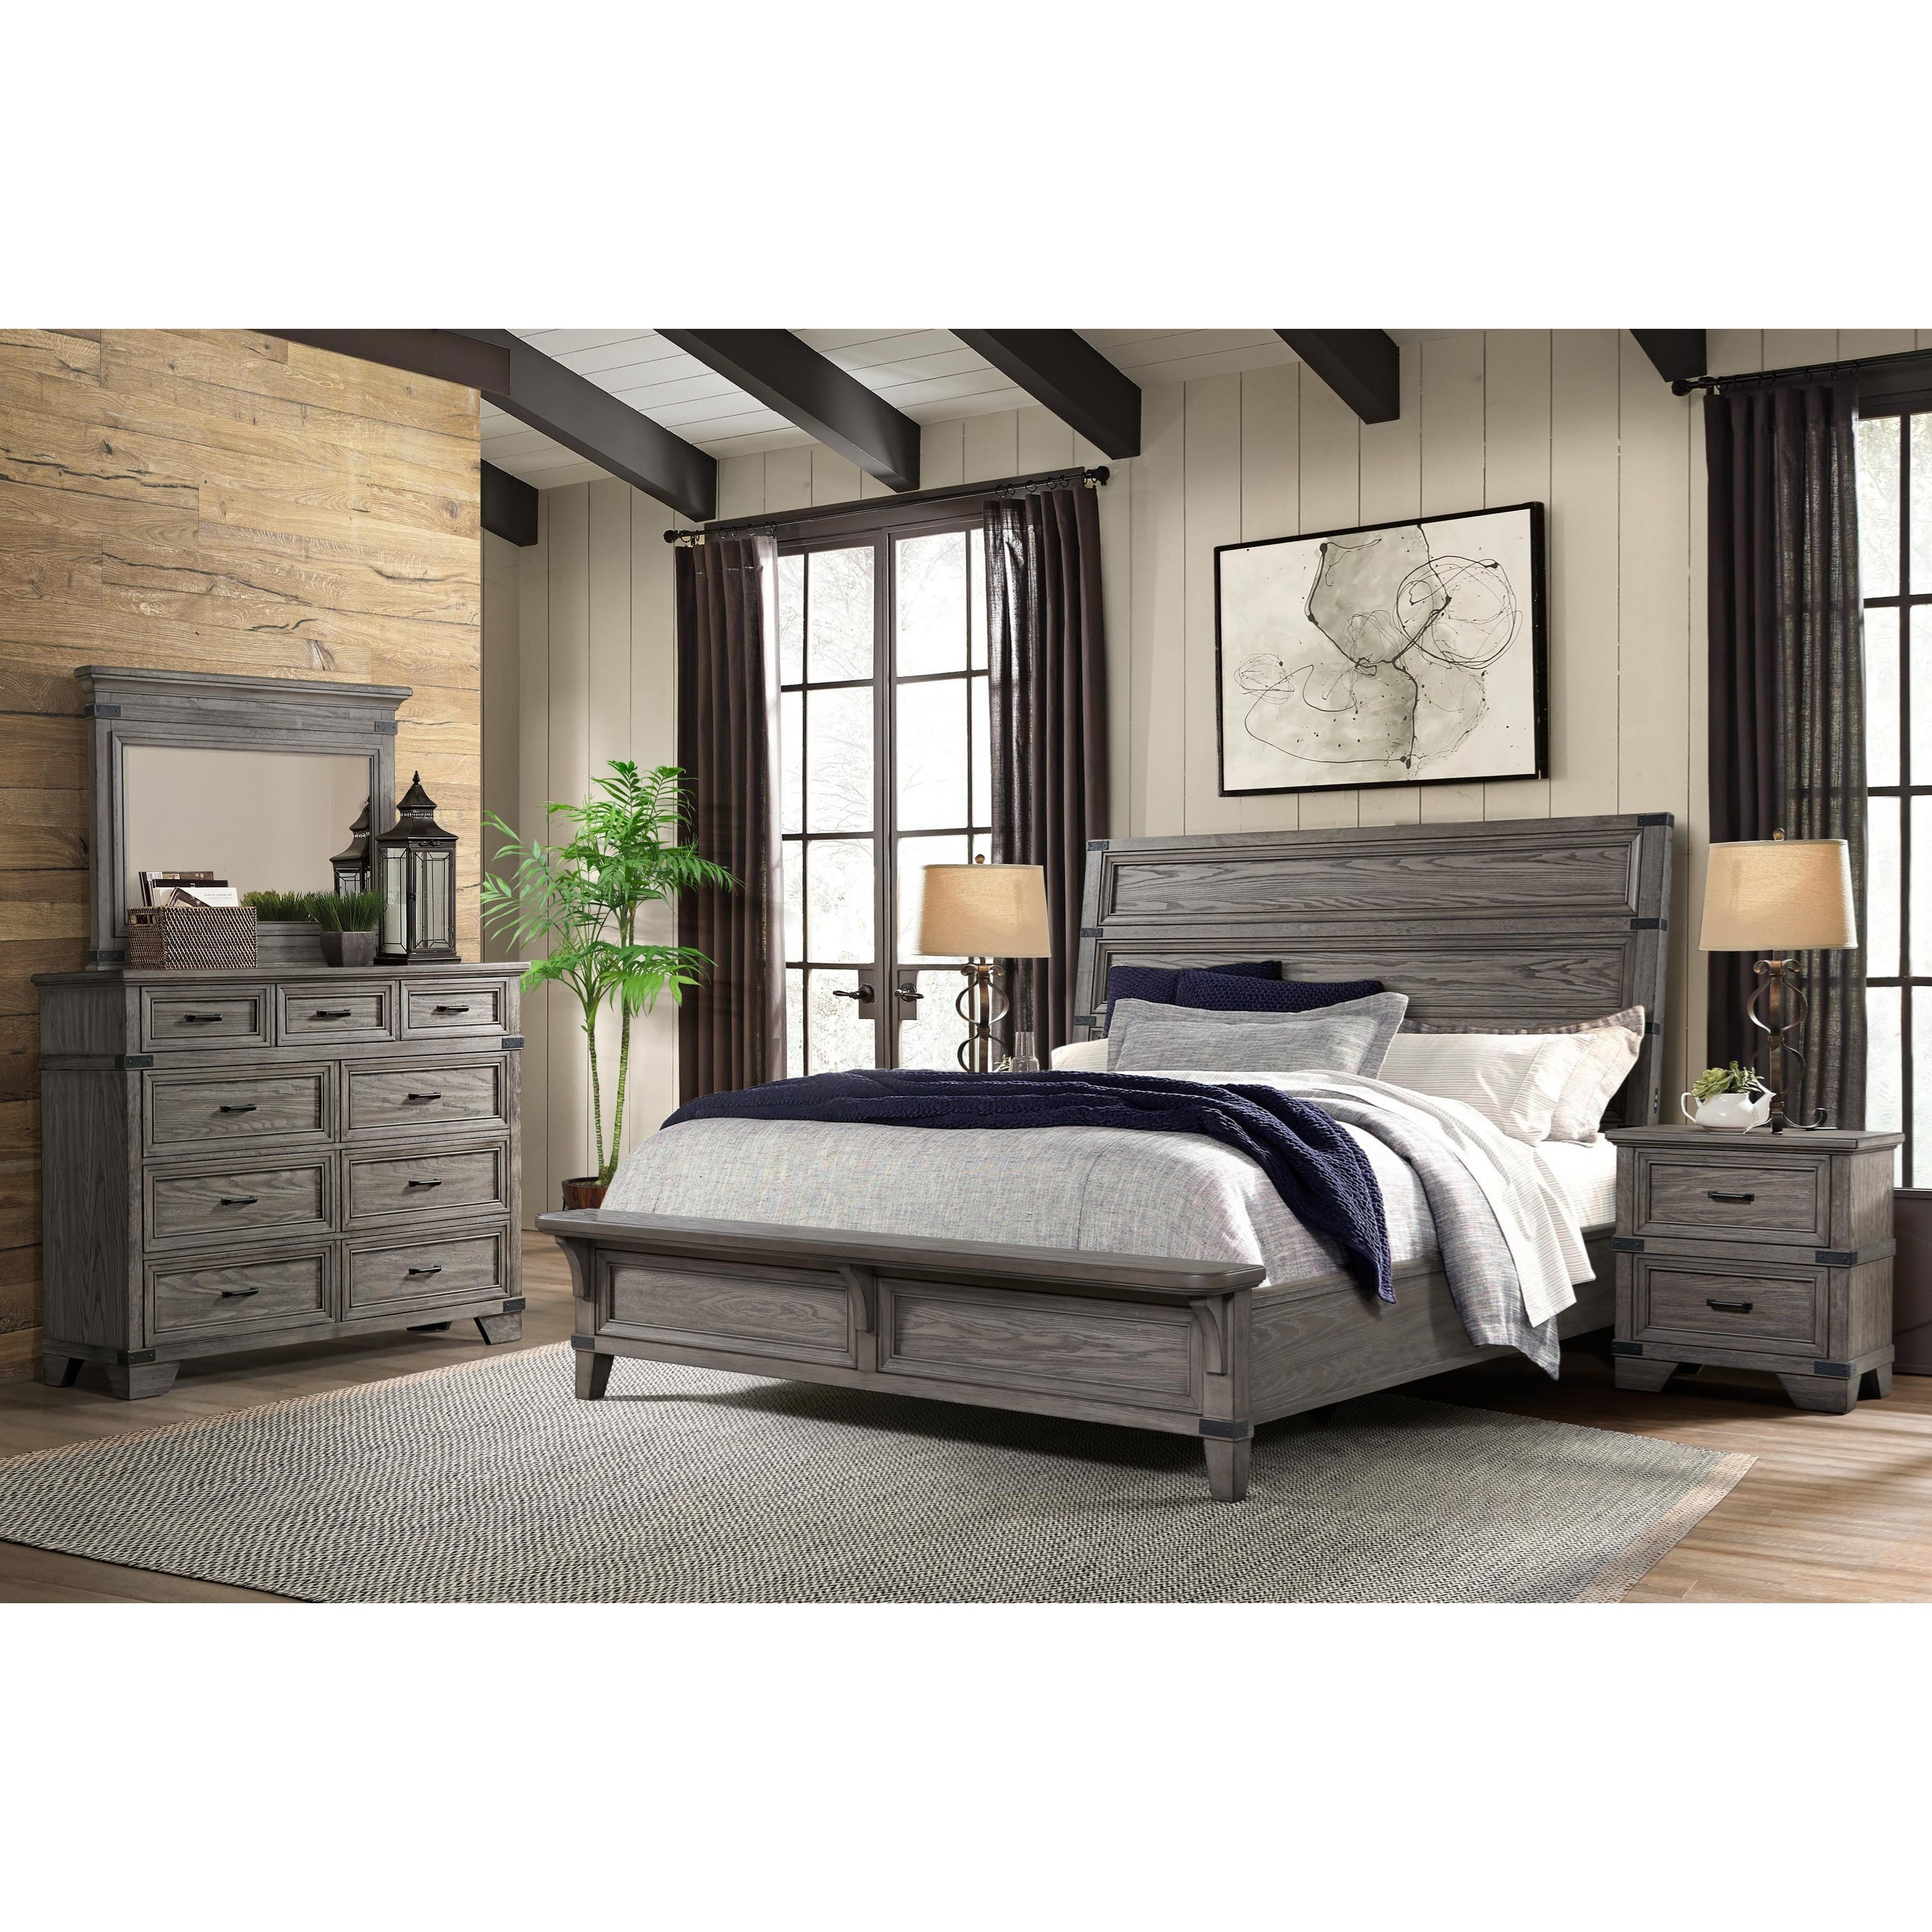 Falco 4 Piece King Bedroom Group at Walker's Furniture